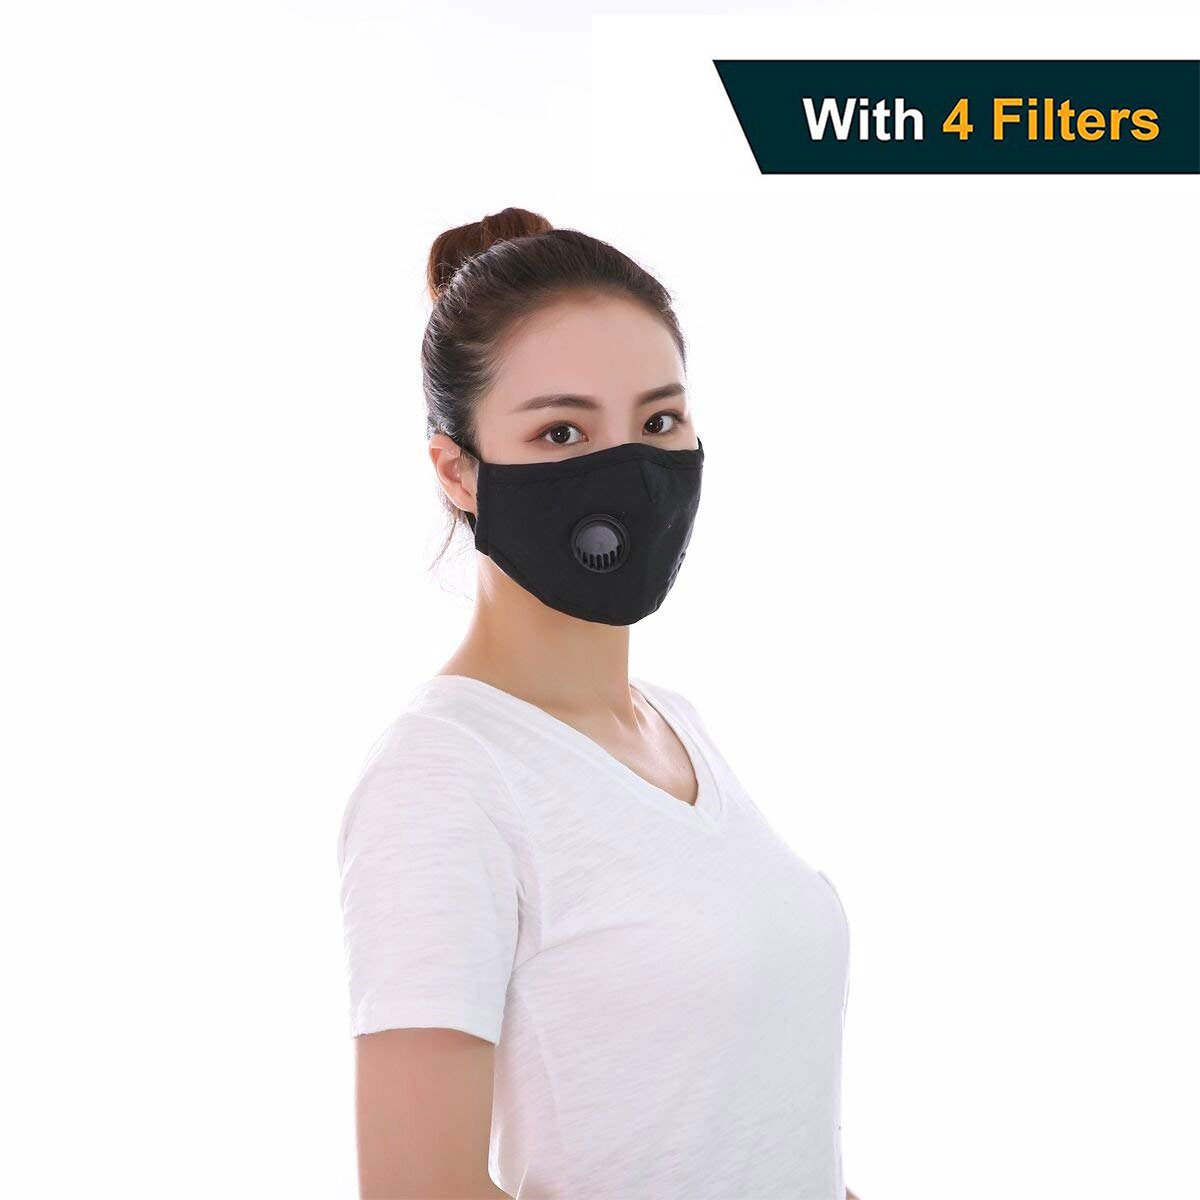 Anti Pollution Mask, FBve Washable Cotton Respirator Mask with Adjustable Straps, Anti-dust Mouth Masks with 4-Pack Replaceable Filters for Men and Women (Black)